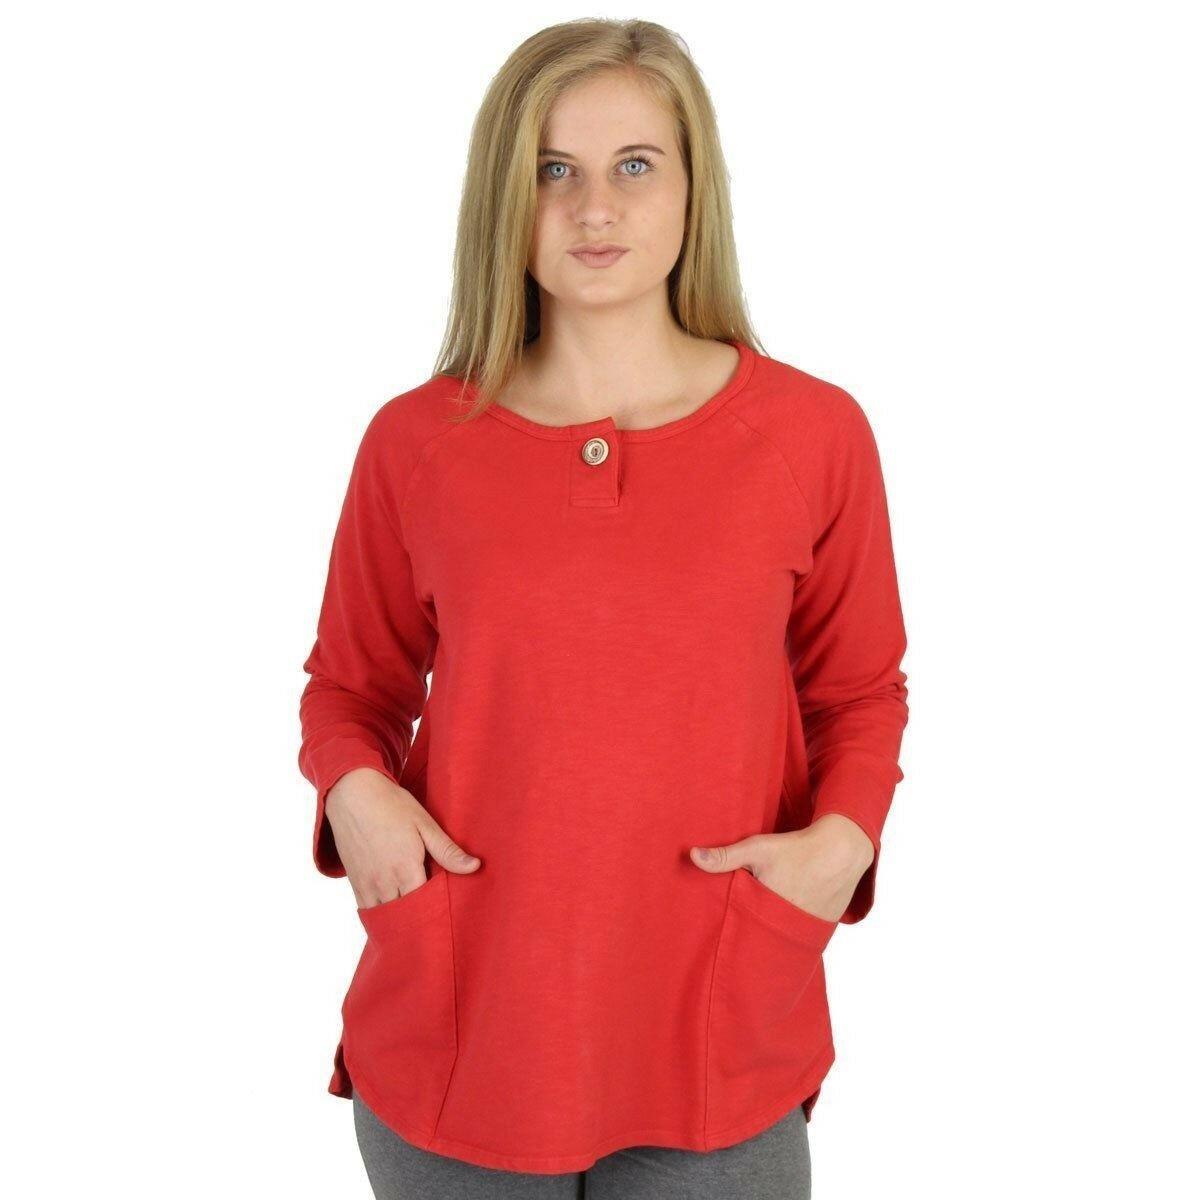 Cotton Terry Knit Henley Top - I CAN TOO - 100% Cotton - Made in USA